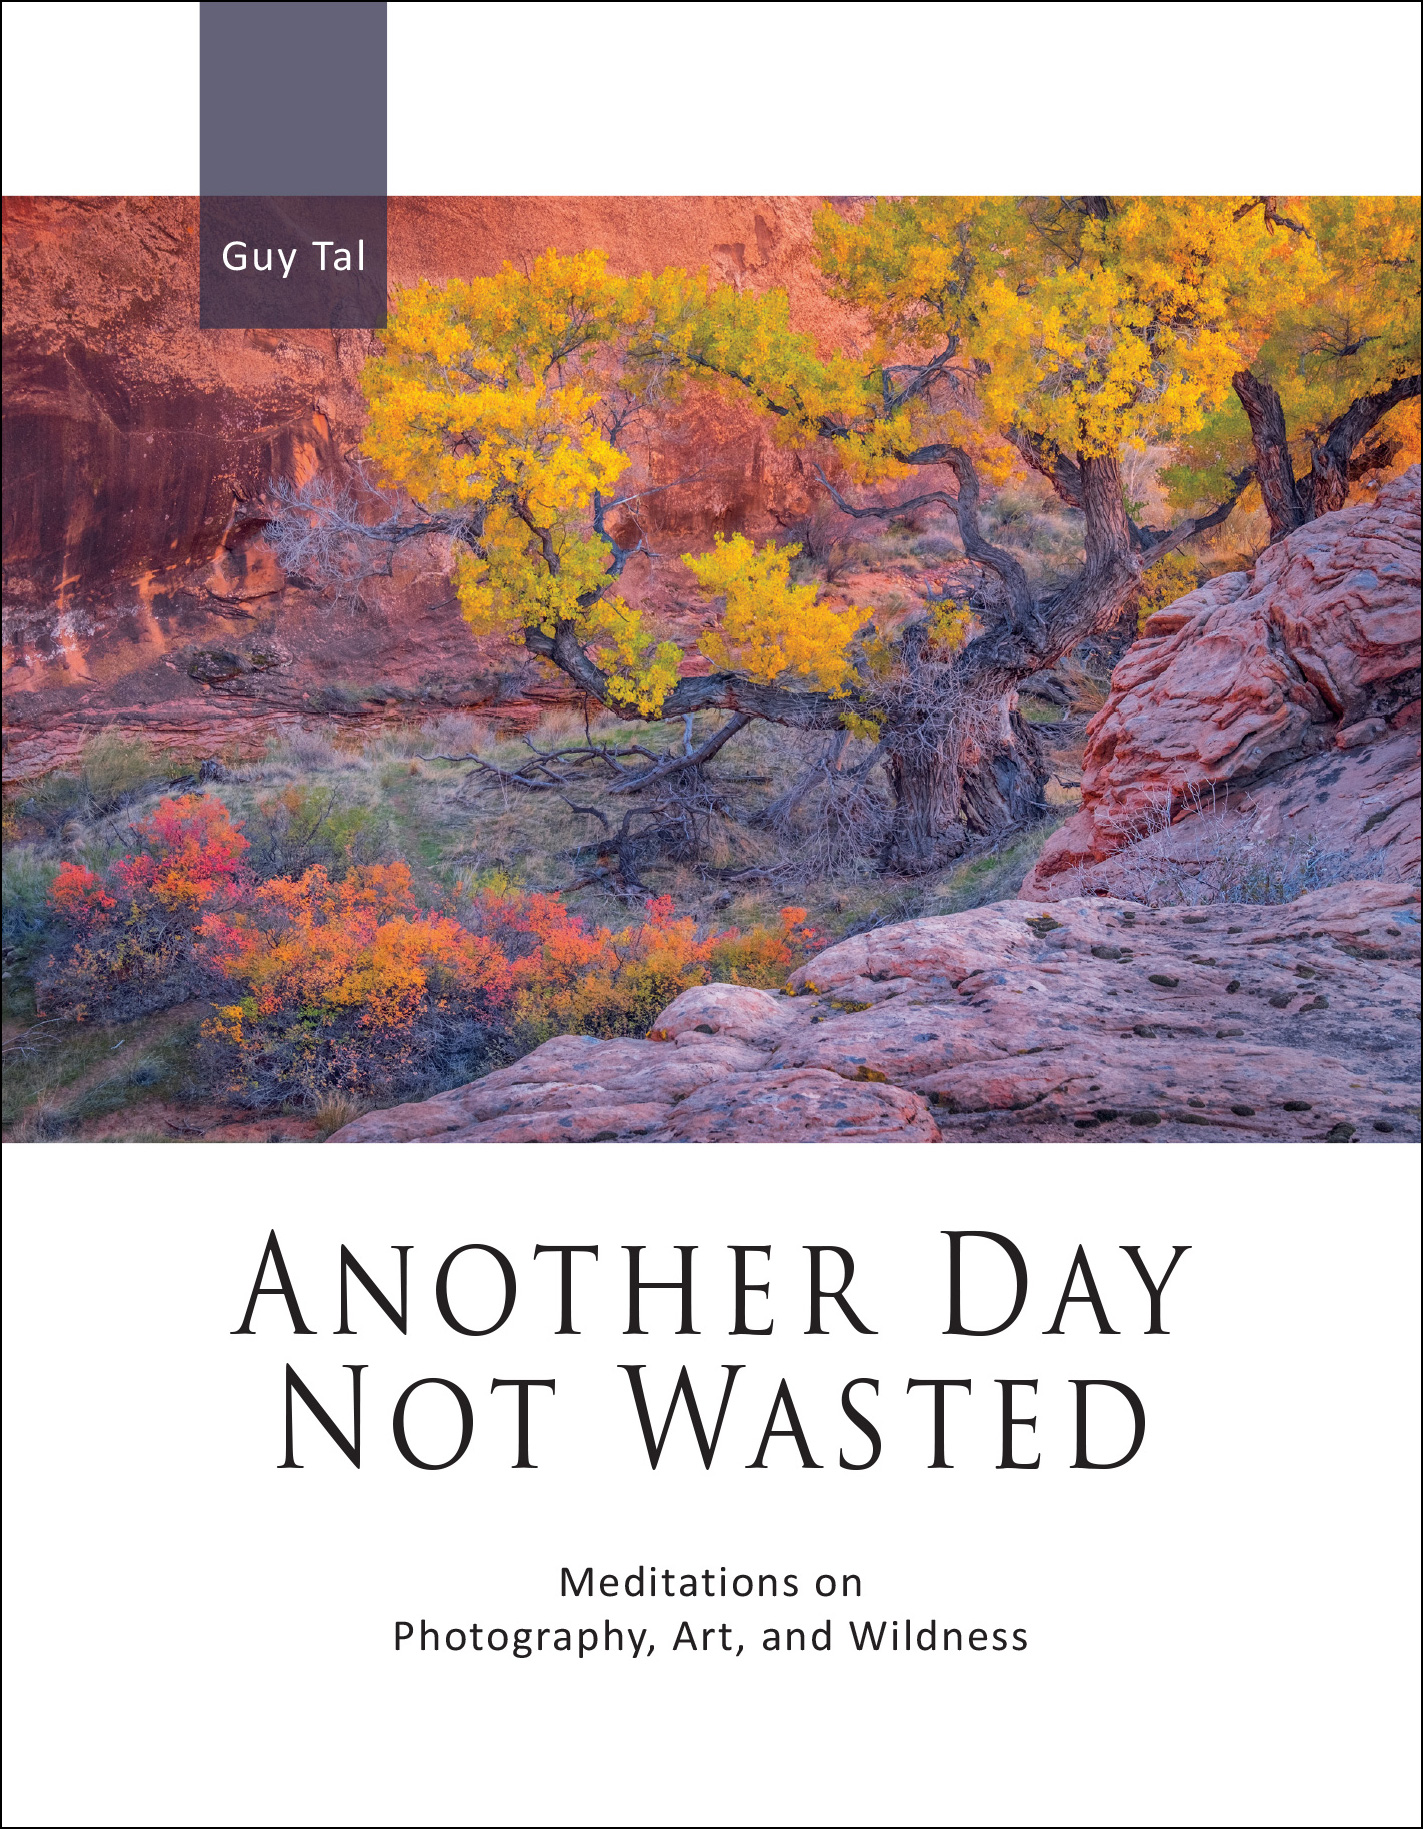 Guy Tal: Another Day Not Wasted